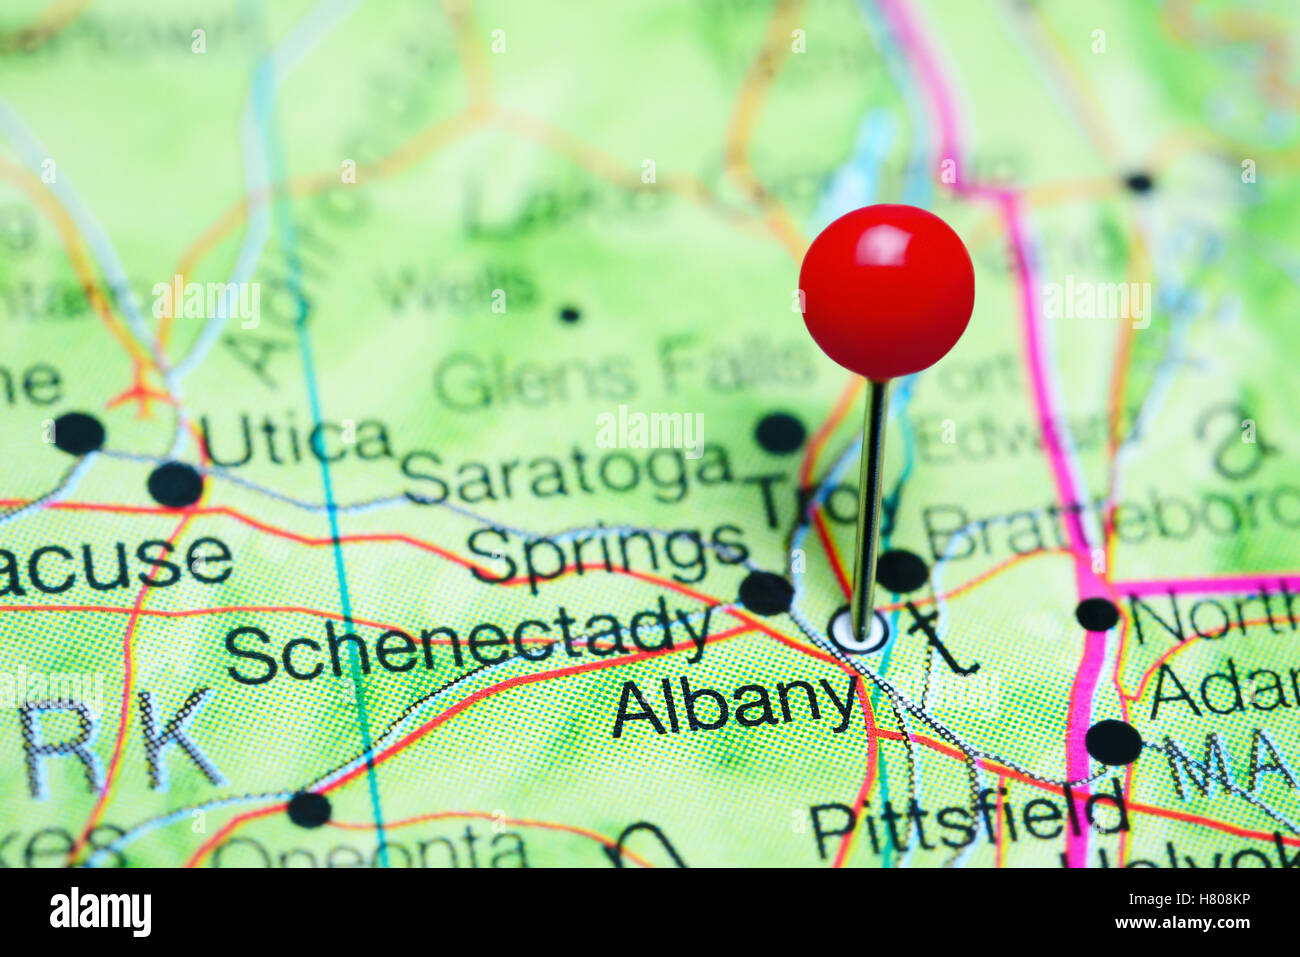 Map Of New York State Usa.Albany Pinned On A Map Of New York State Usa Stock Photo 125396650